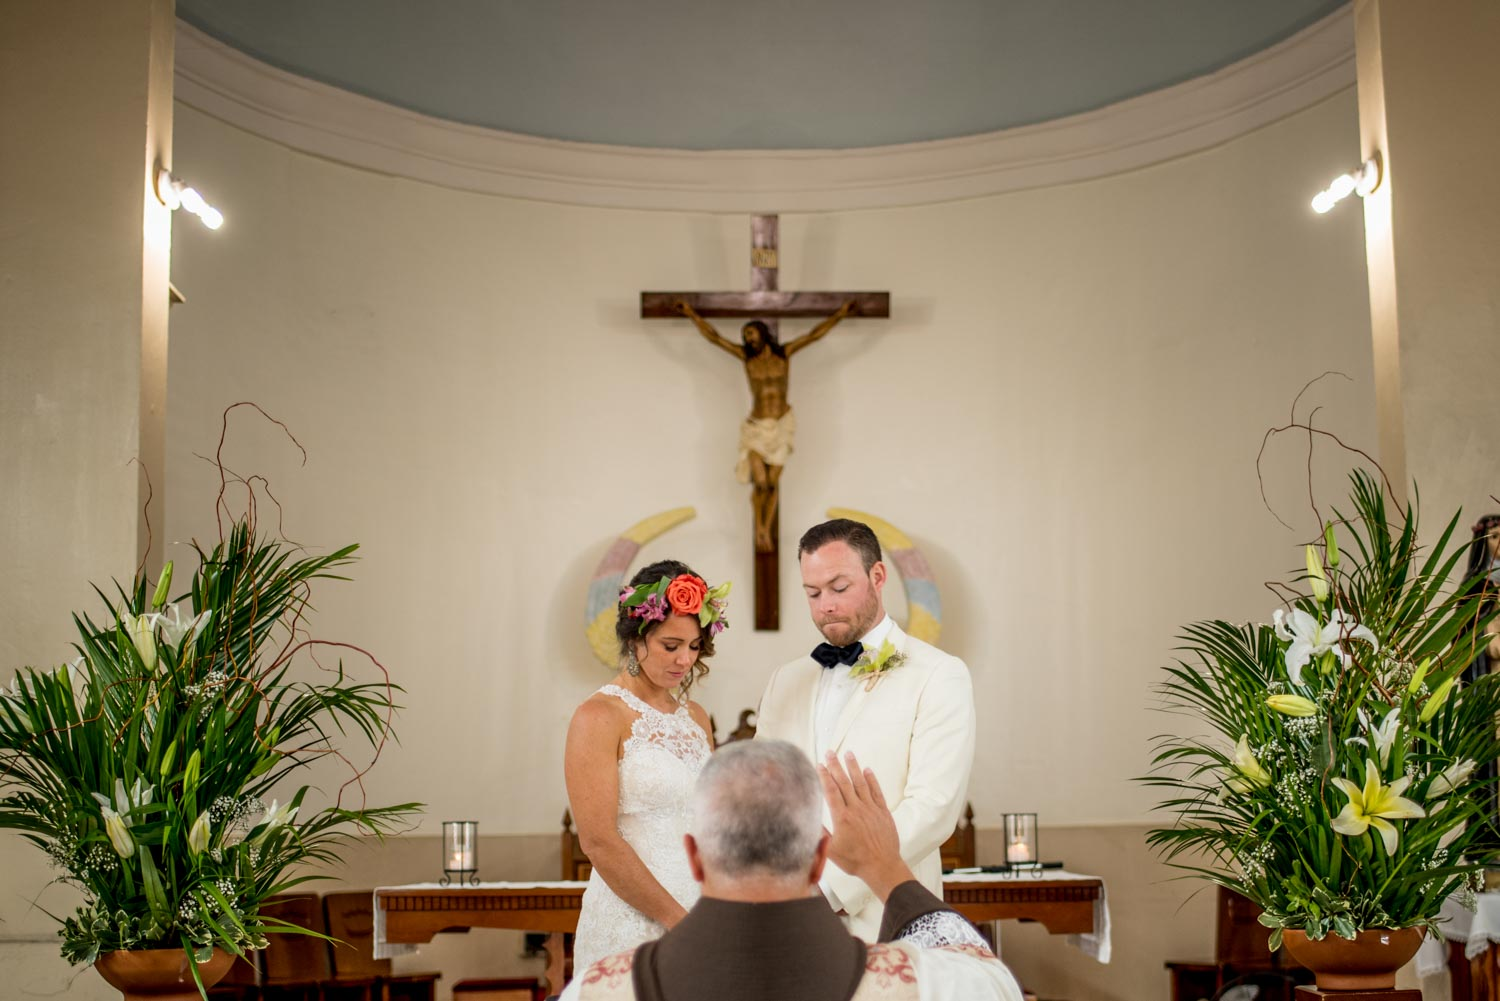 The father blessing the happy couple in front of a catholic cross.